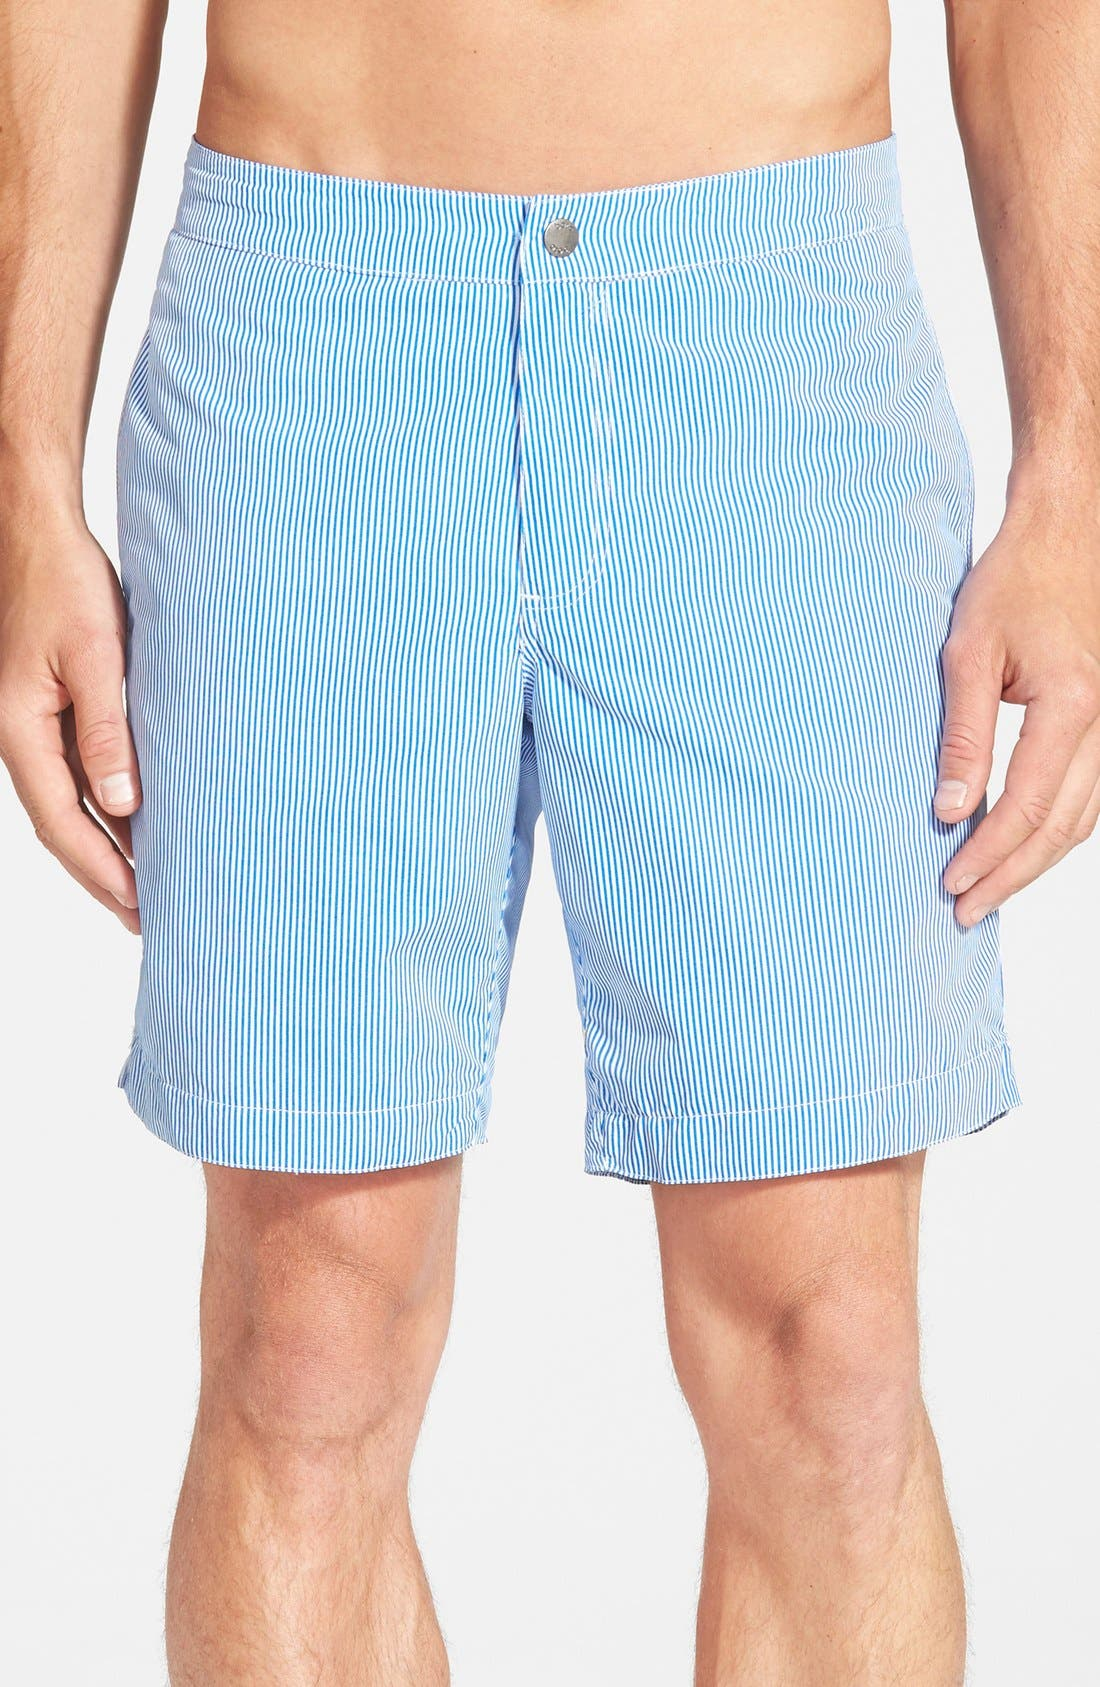 boto 'Aruba - Stripe' Tailored Fit 8.5 Inch Board Shorts